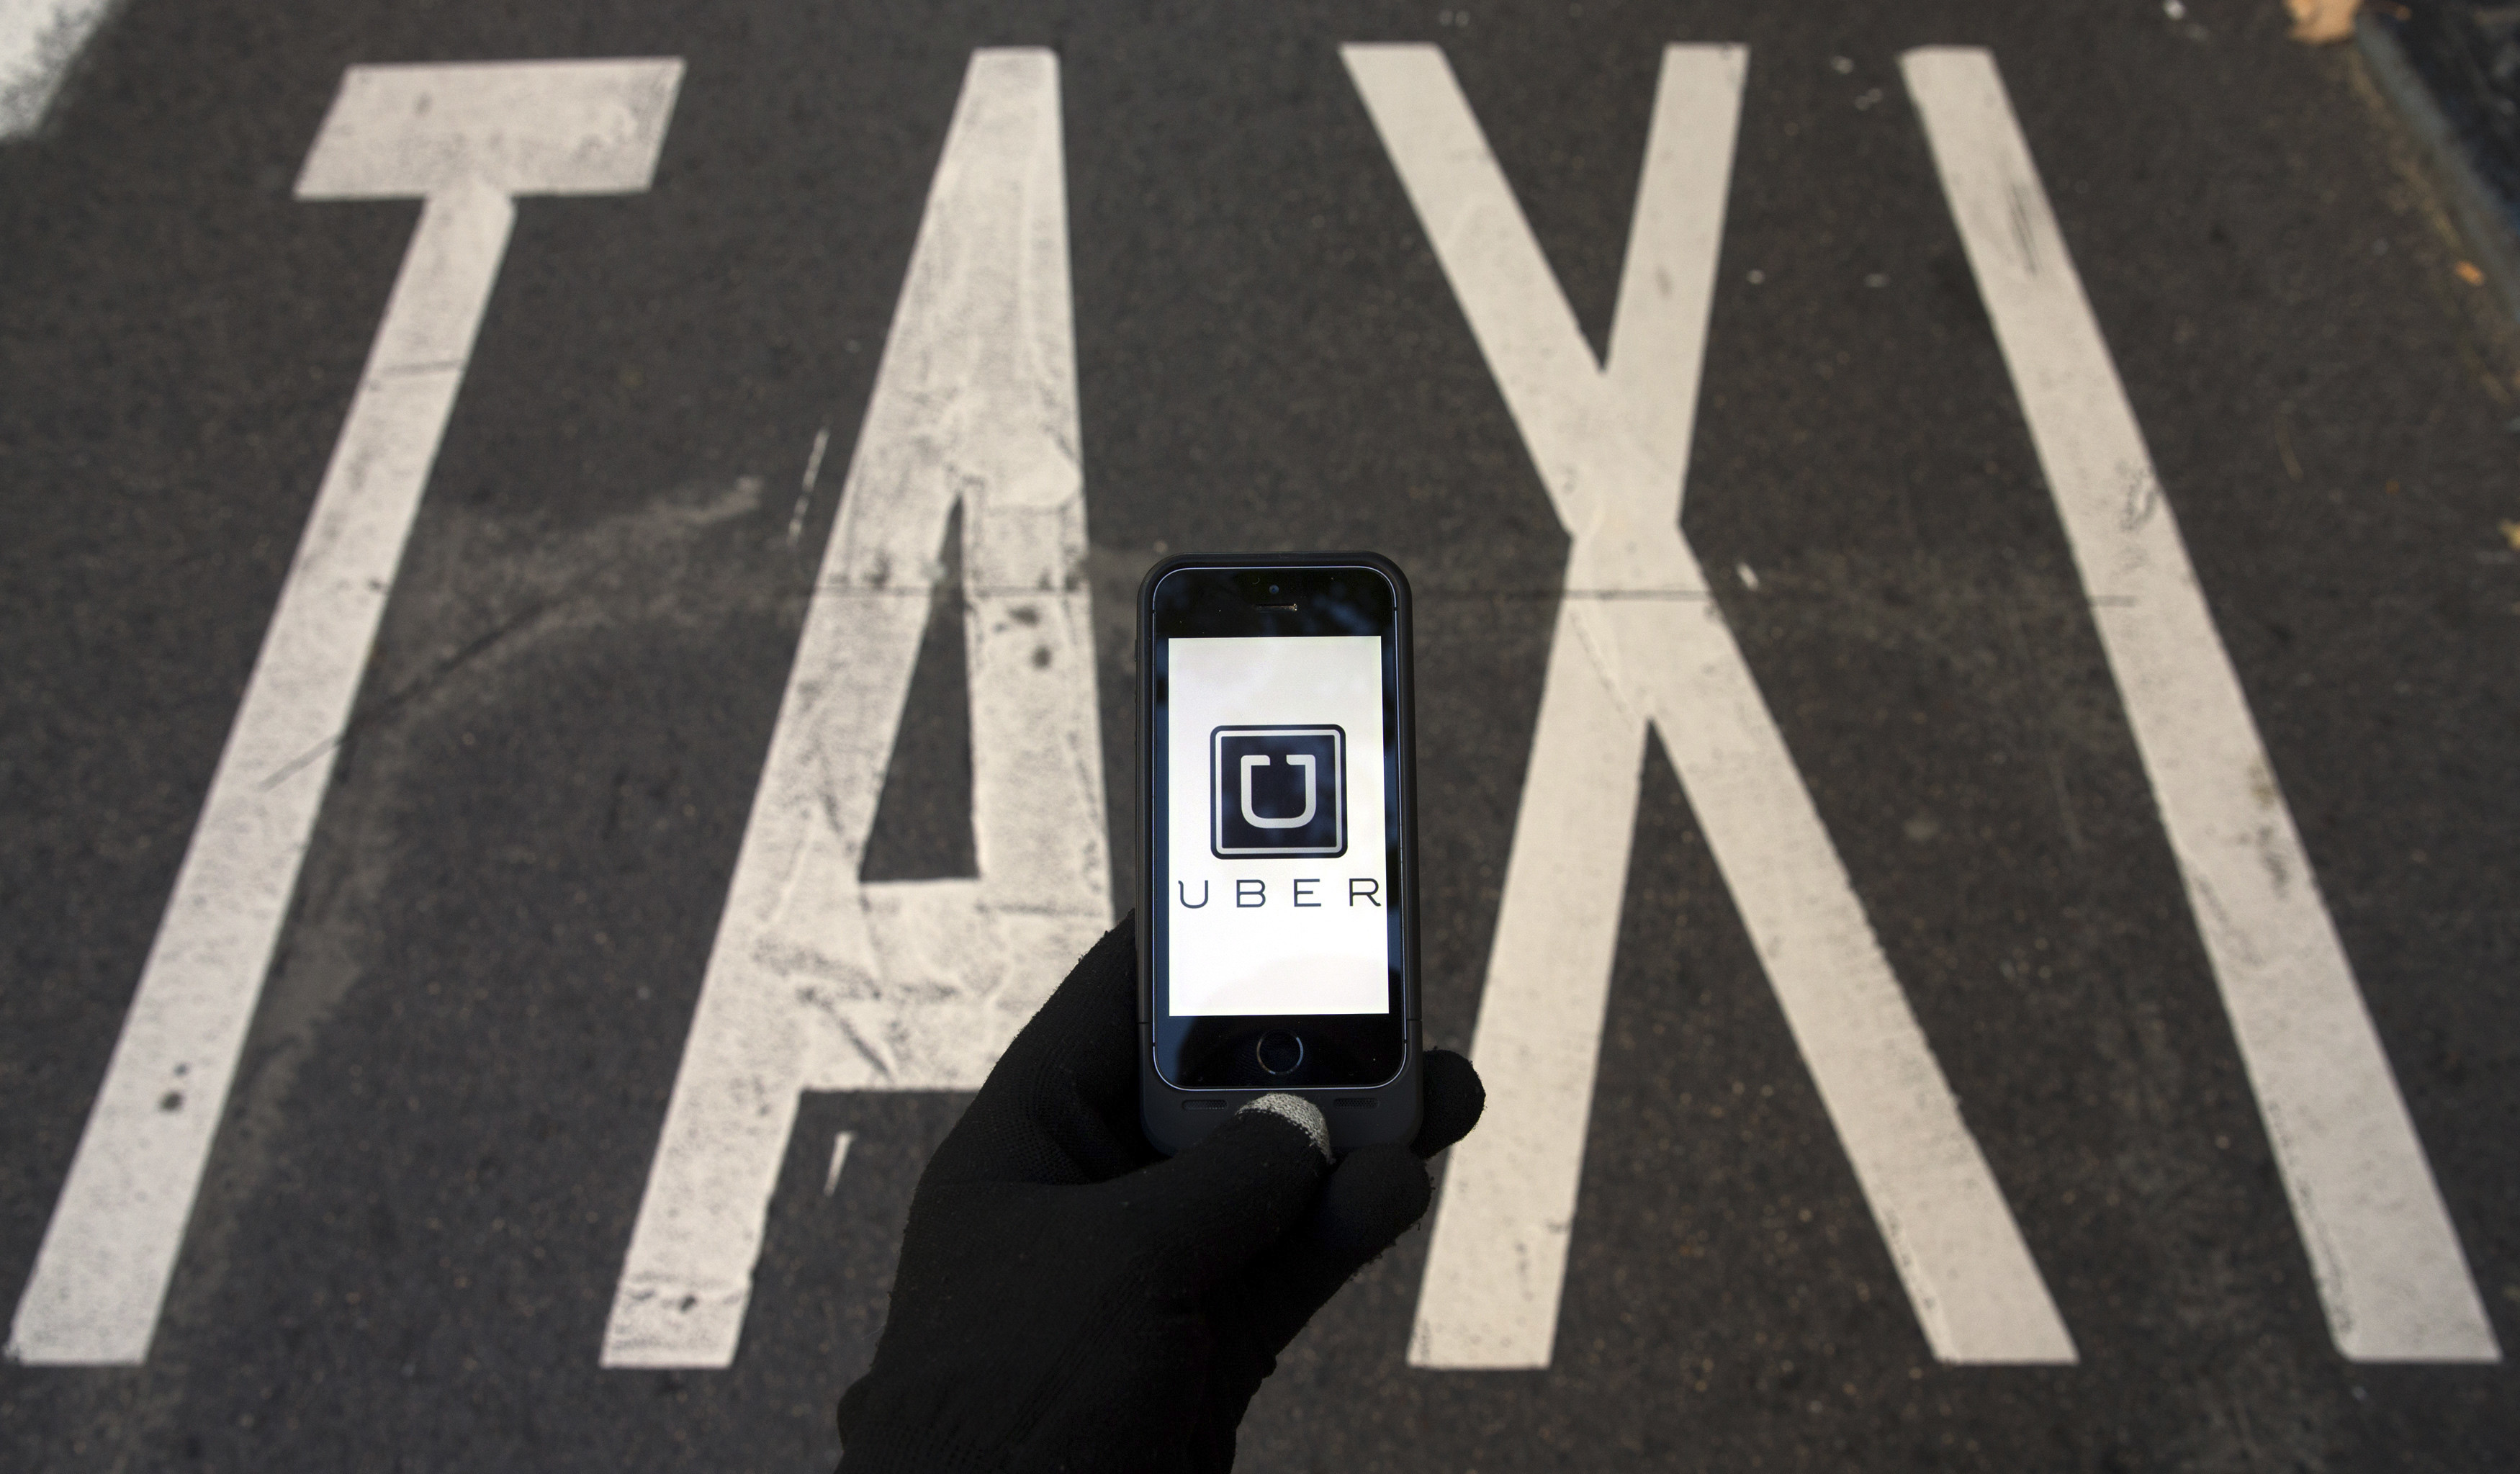 The logo of car-sharing service app Uber on a smartphone over a reserved lane for taxis